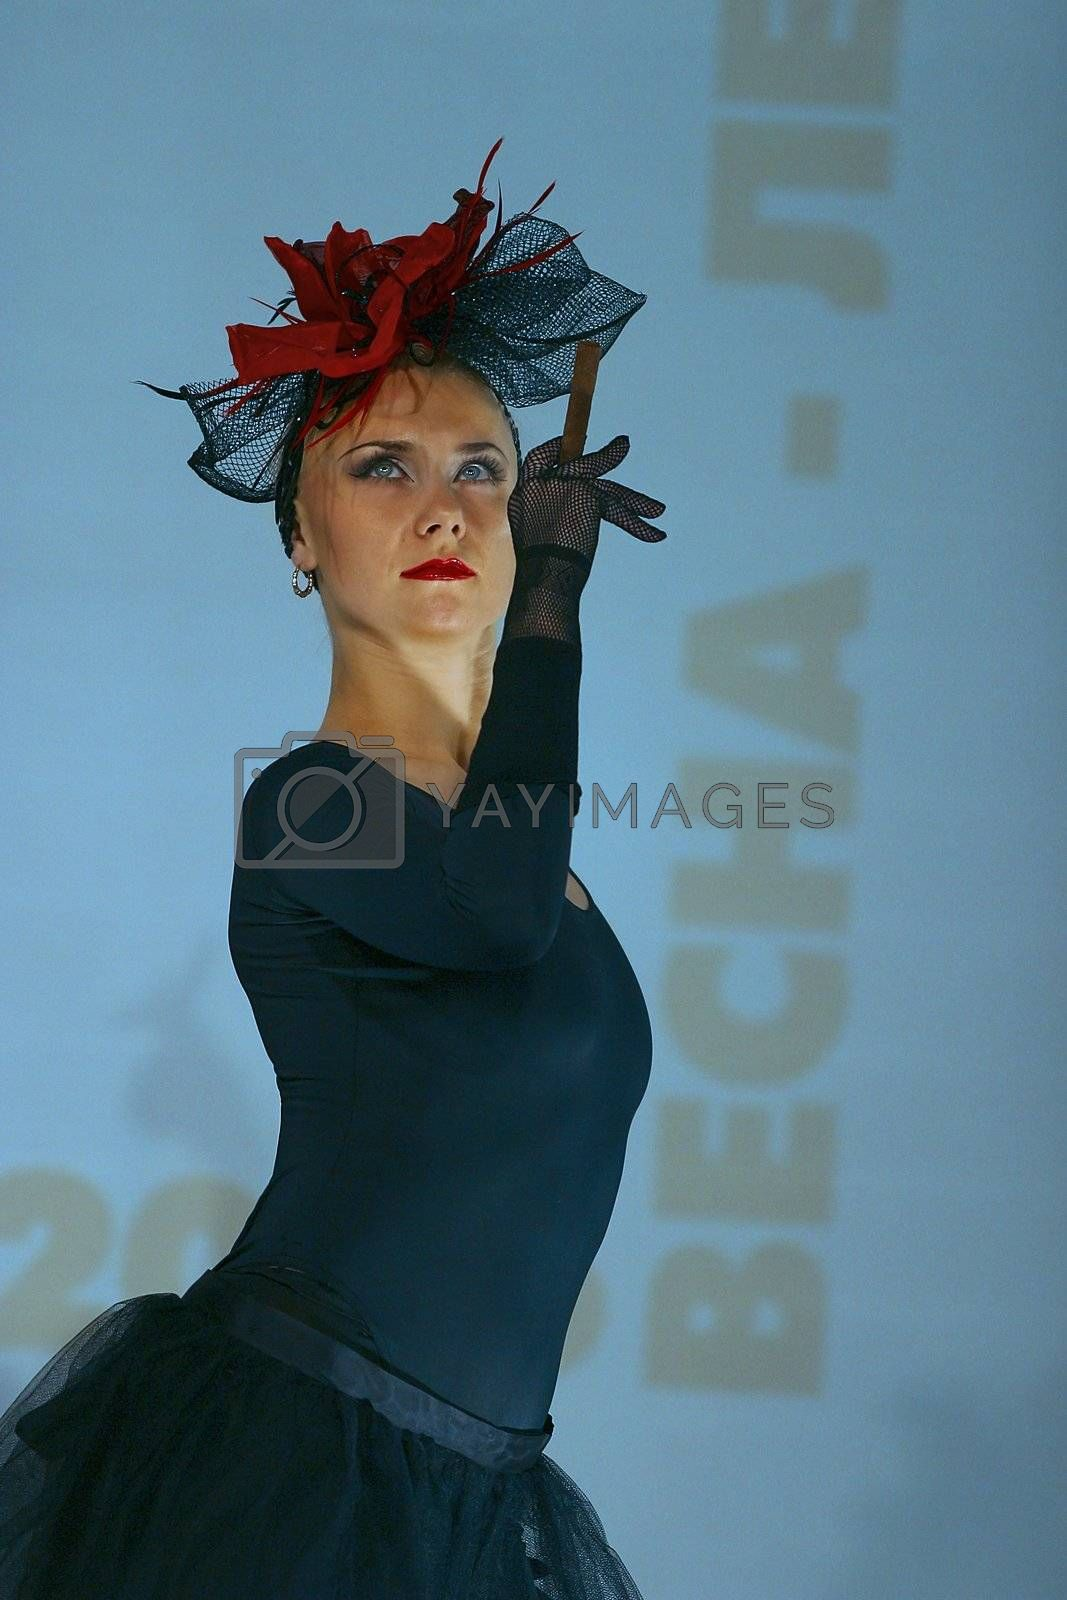 The girl - models in a hat on display of clothes